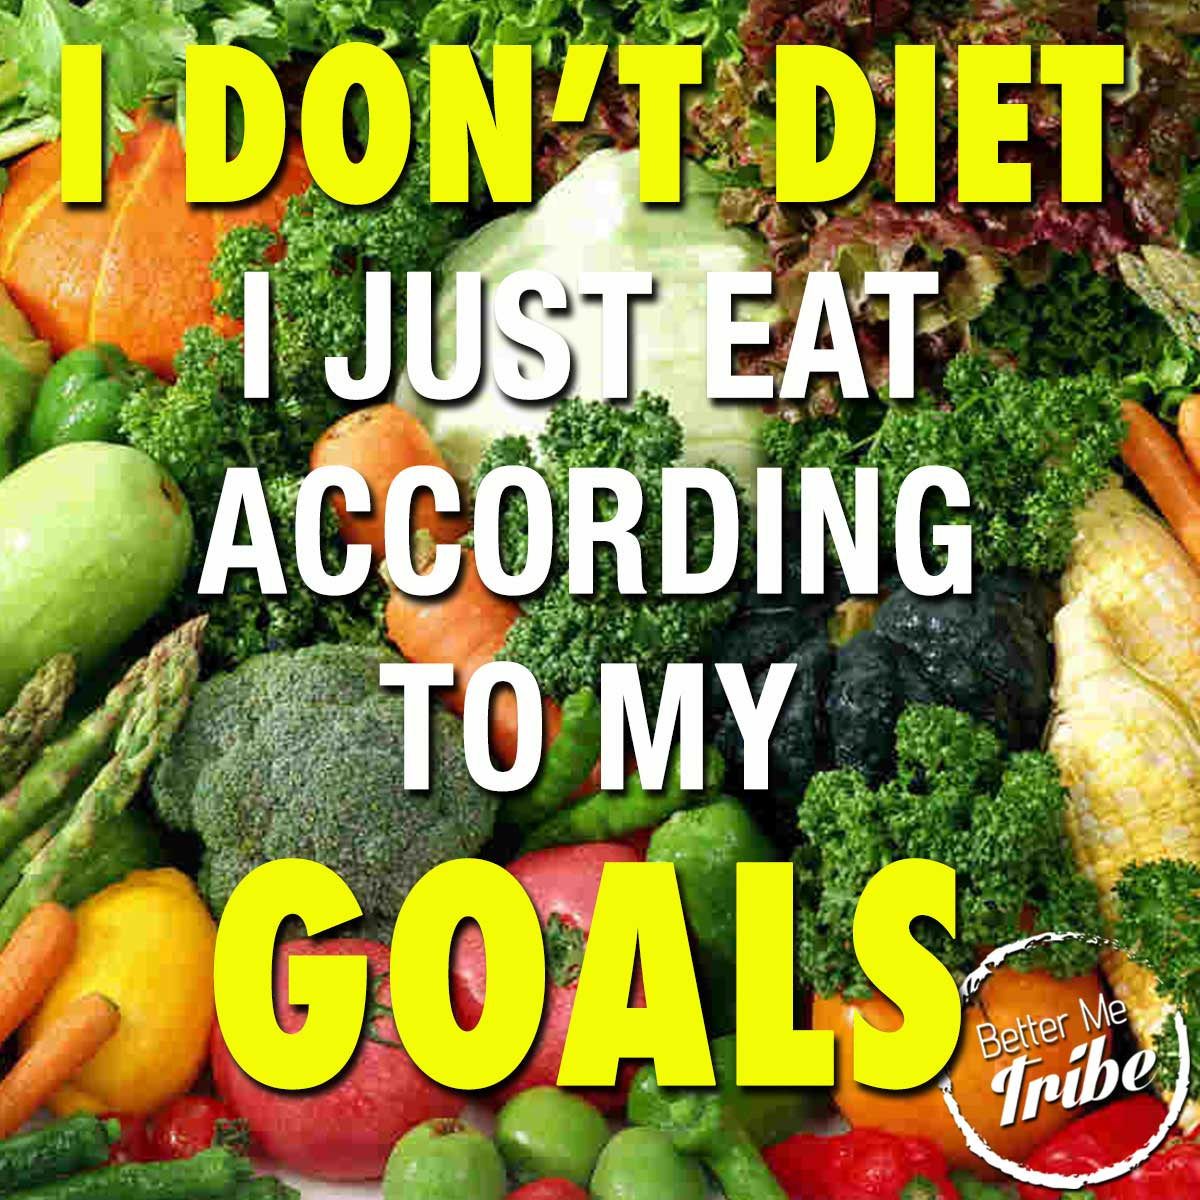 Eat According to Your Goals